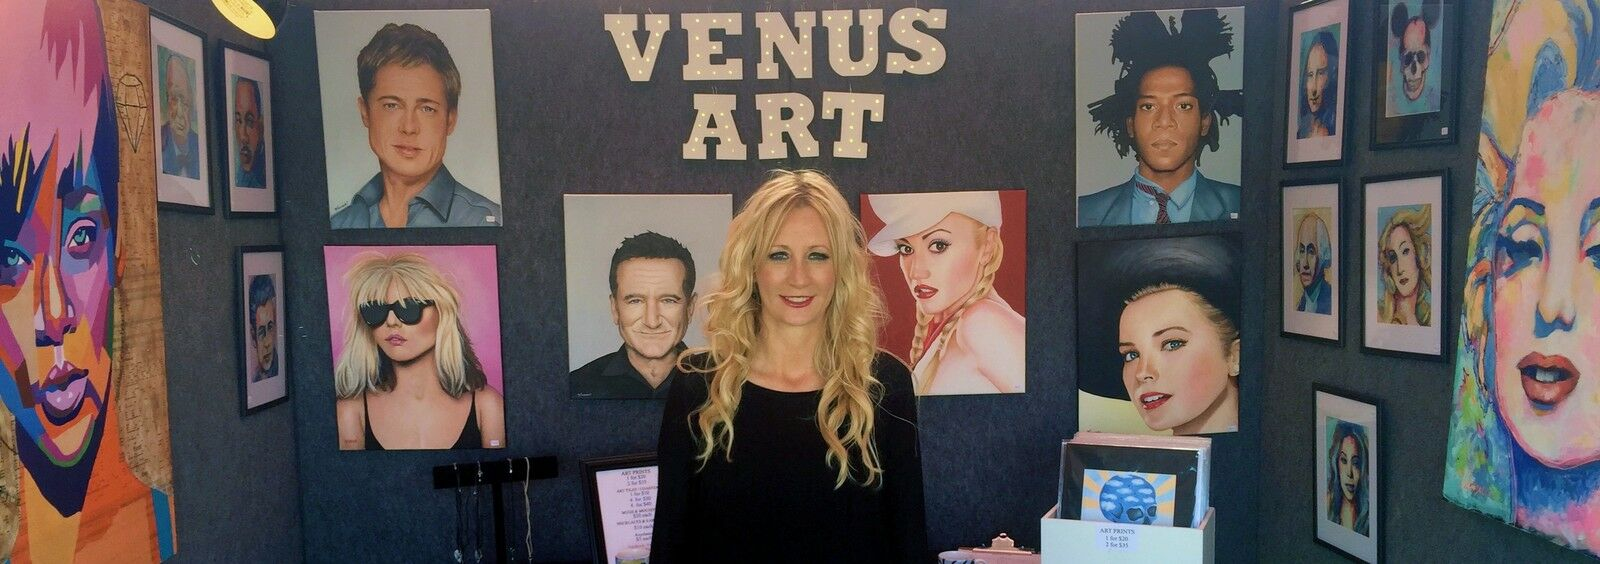 art-of-venus